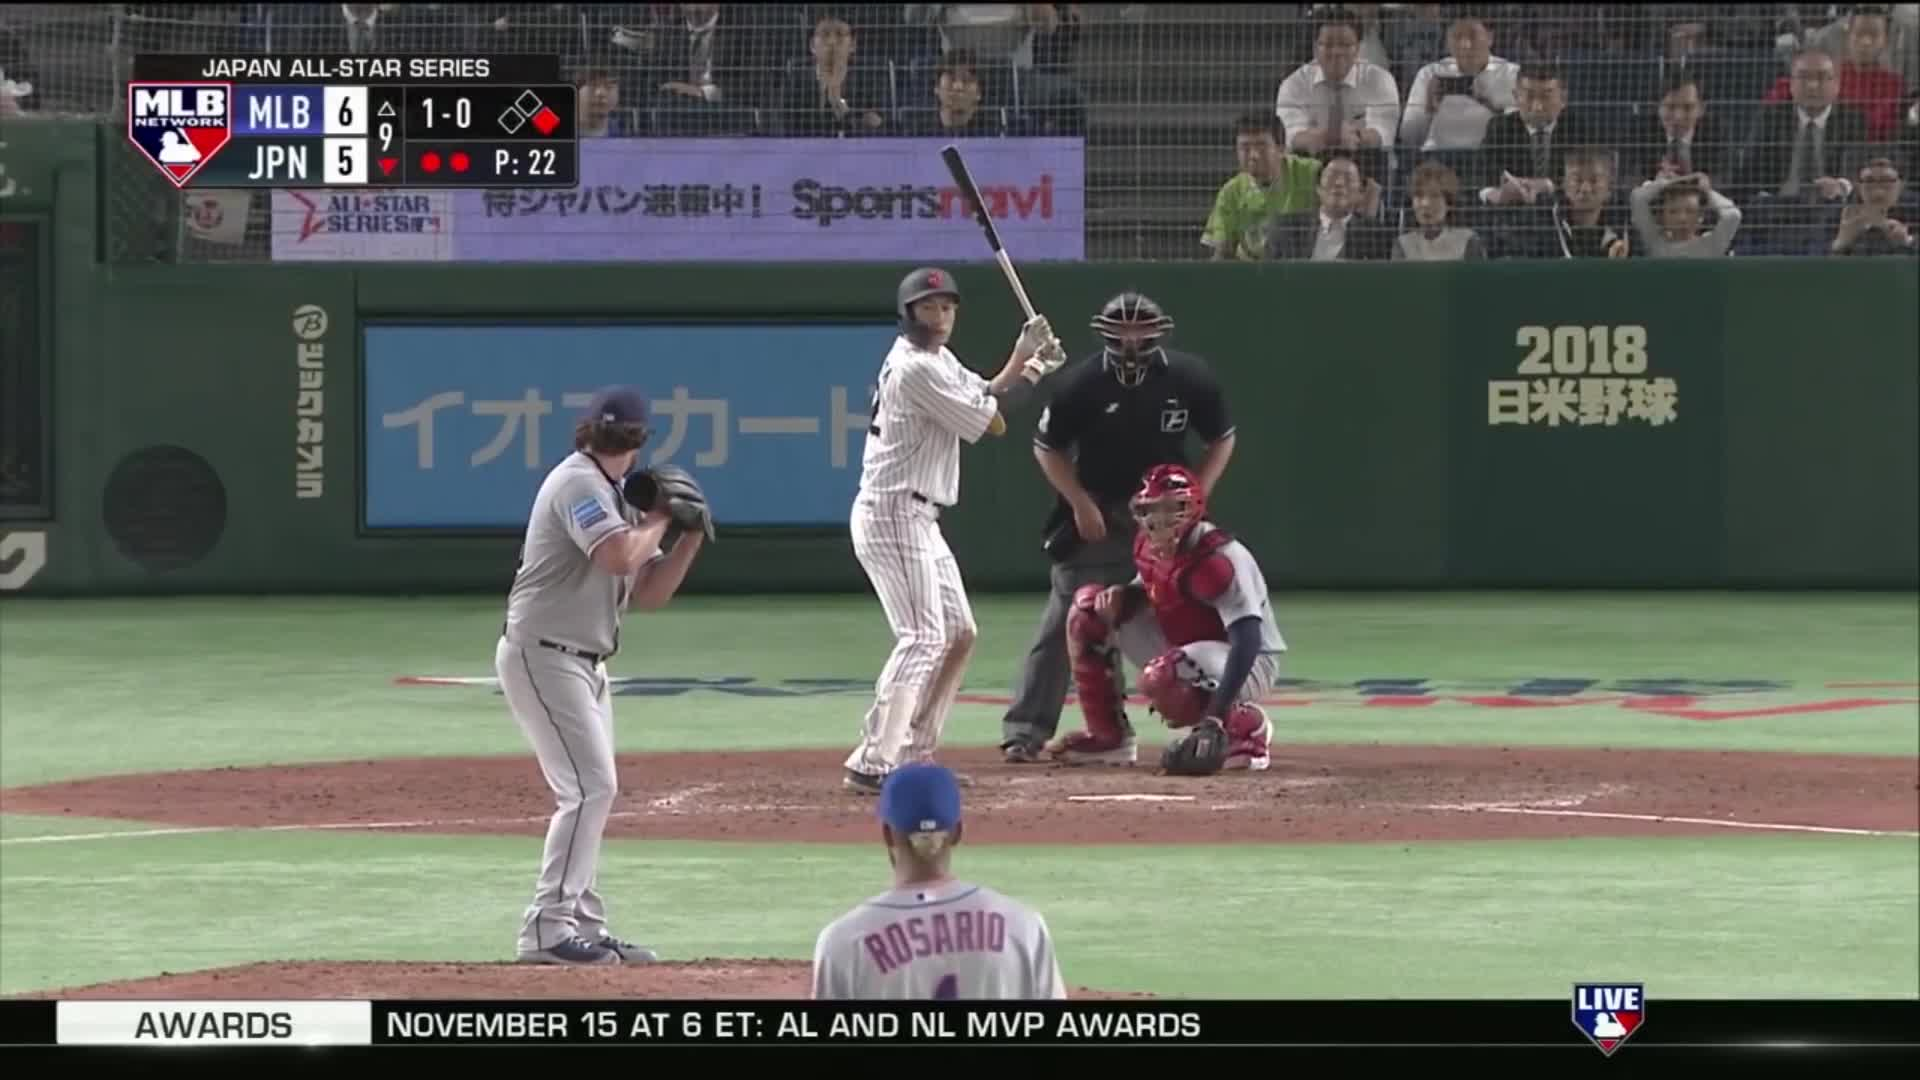 Japan, MLB, NPB, Yuki Yanagita, Yuki Yanagita walk off Home Run GIFs